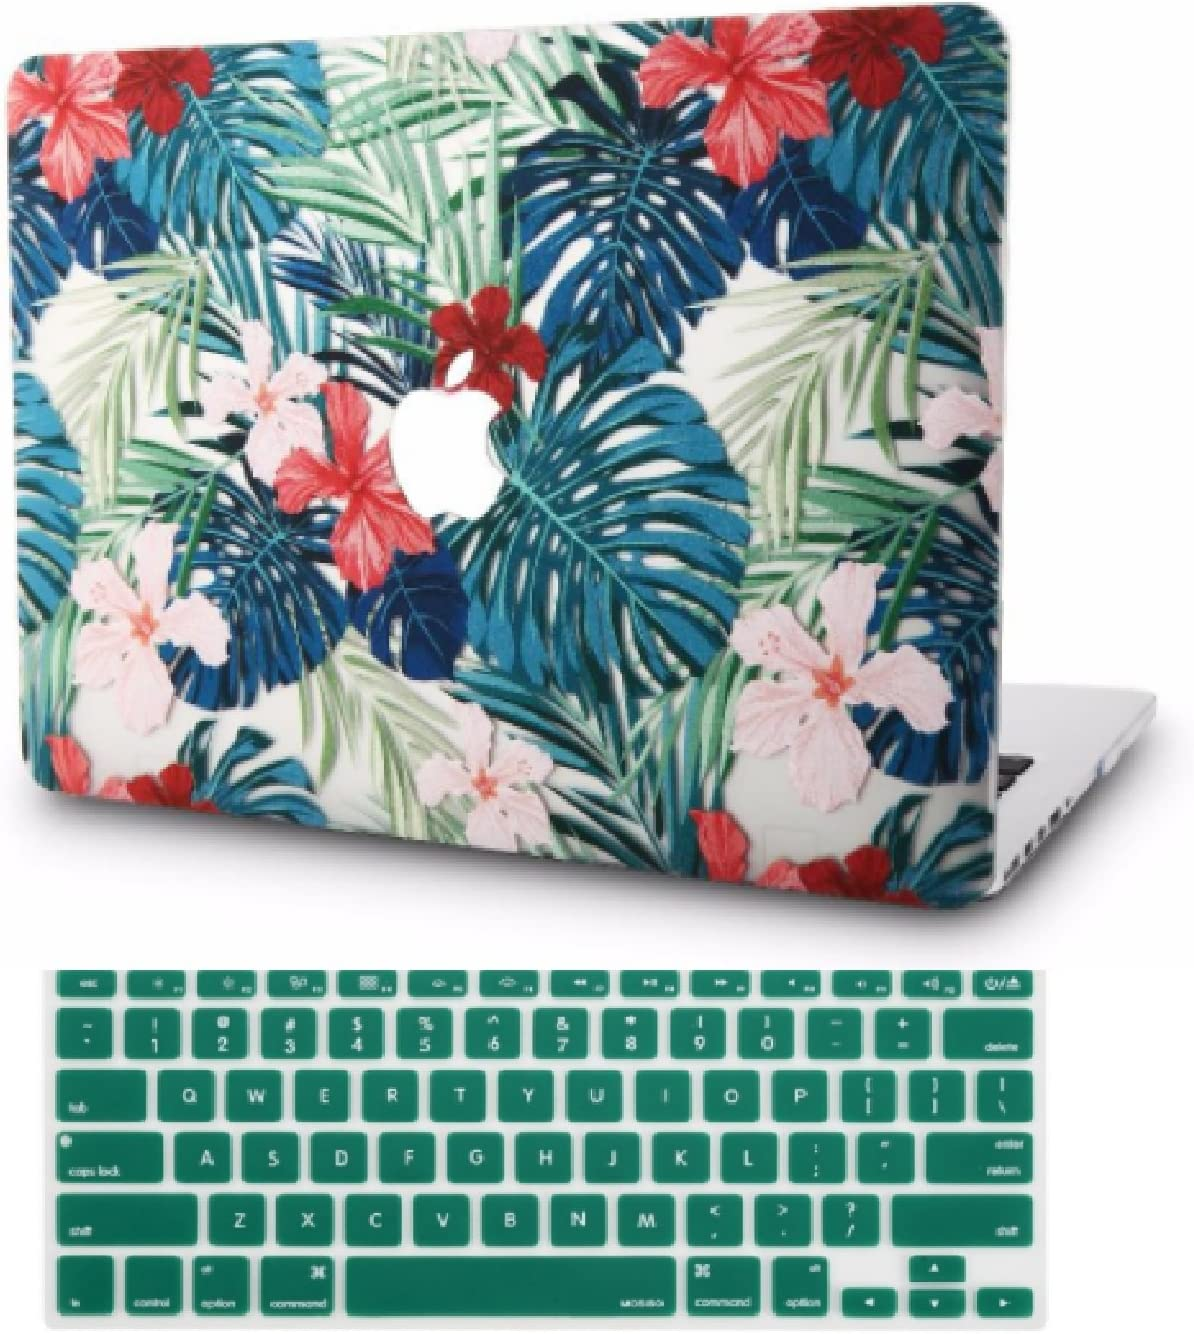 "KECC Laptop Case for MacBook Air 13"" w/Keyboard Cover Plastic Hard Shell Case A1466/A1369 2 in 1 Bundle (Palm Leaves Red Flower)"